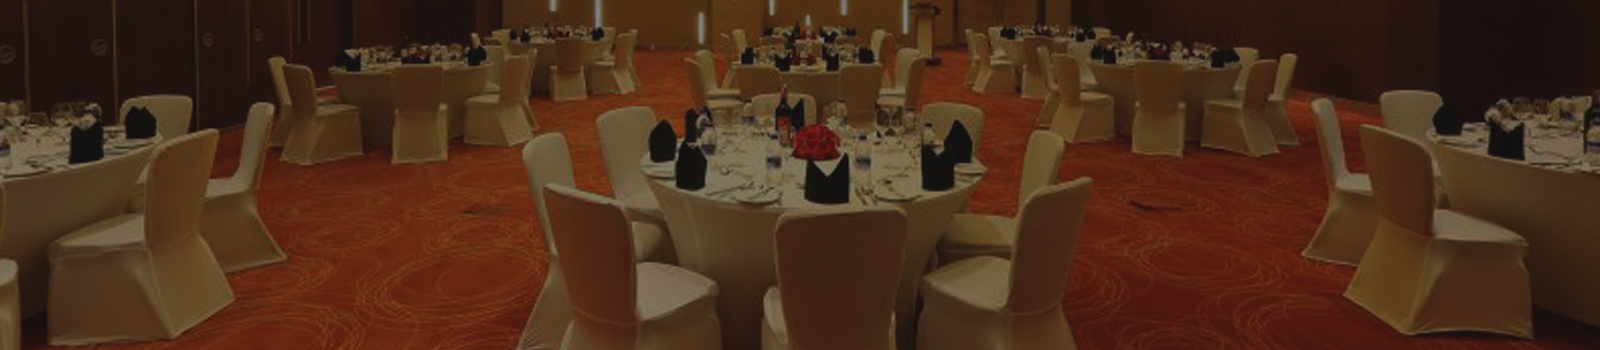 Large Banquet Hall - Novotel Techpark